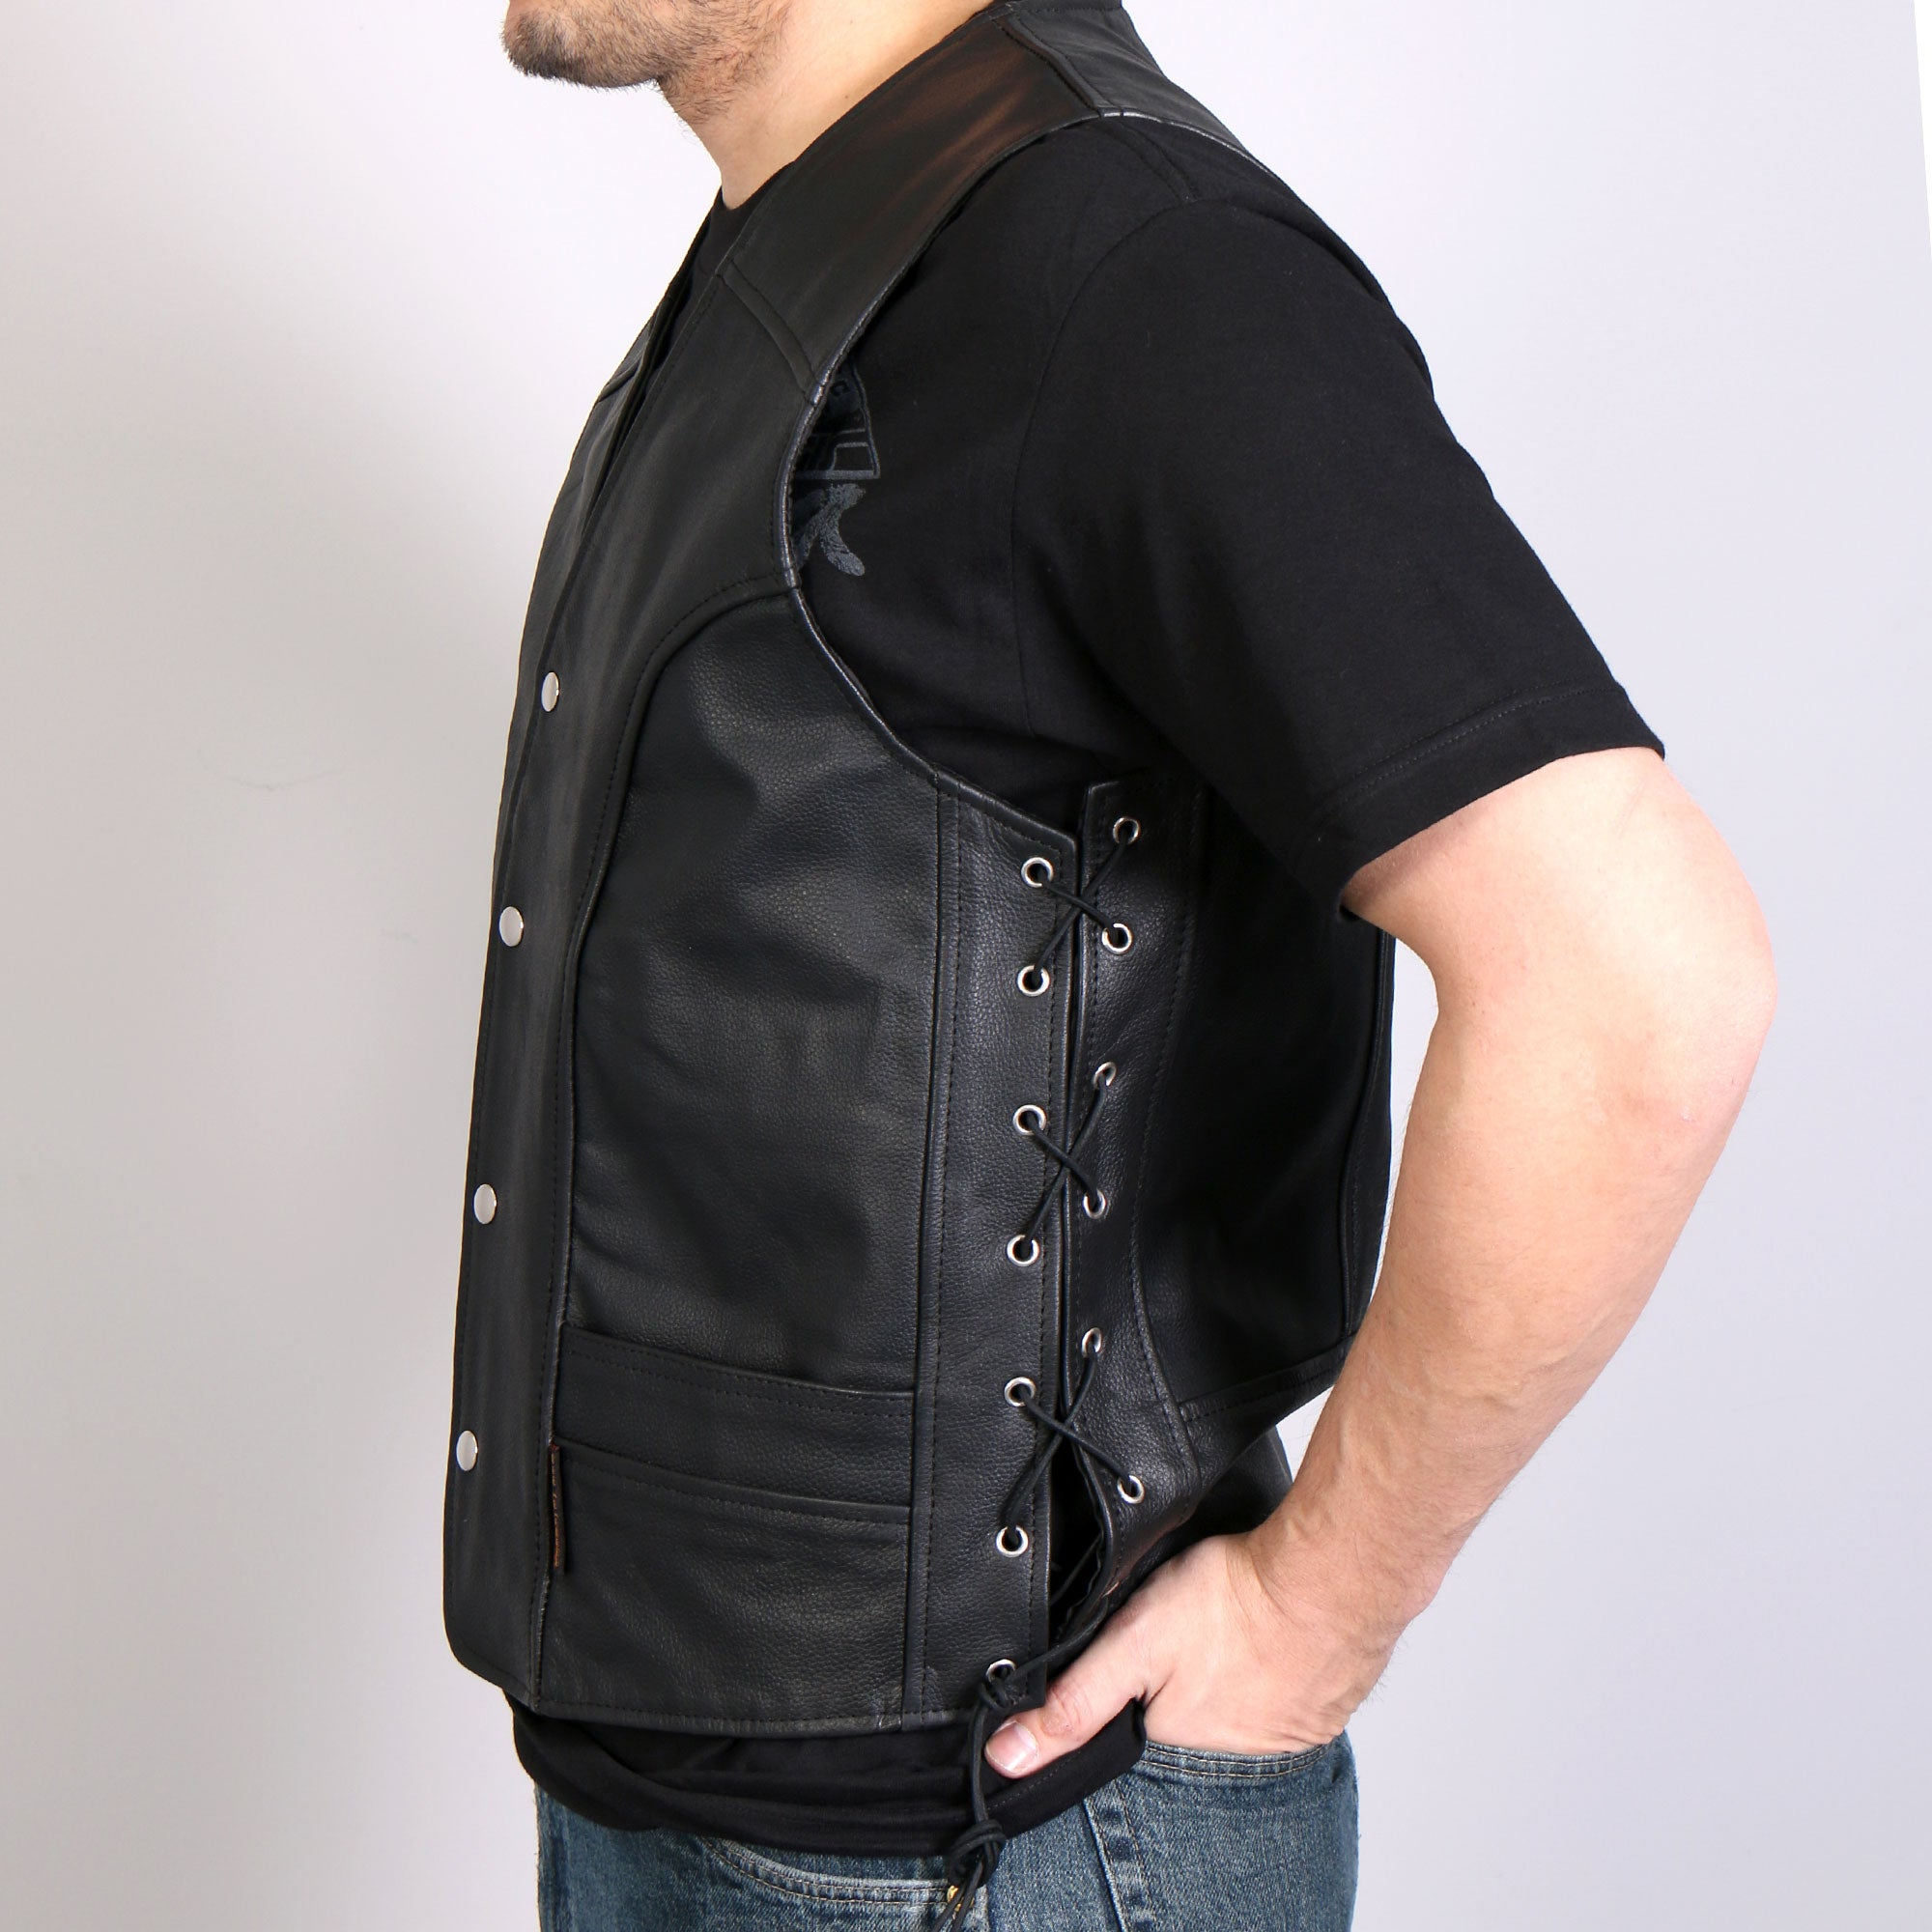 Hot Leathers Men's Leather Vest w/ Front Snaps and Side Lace